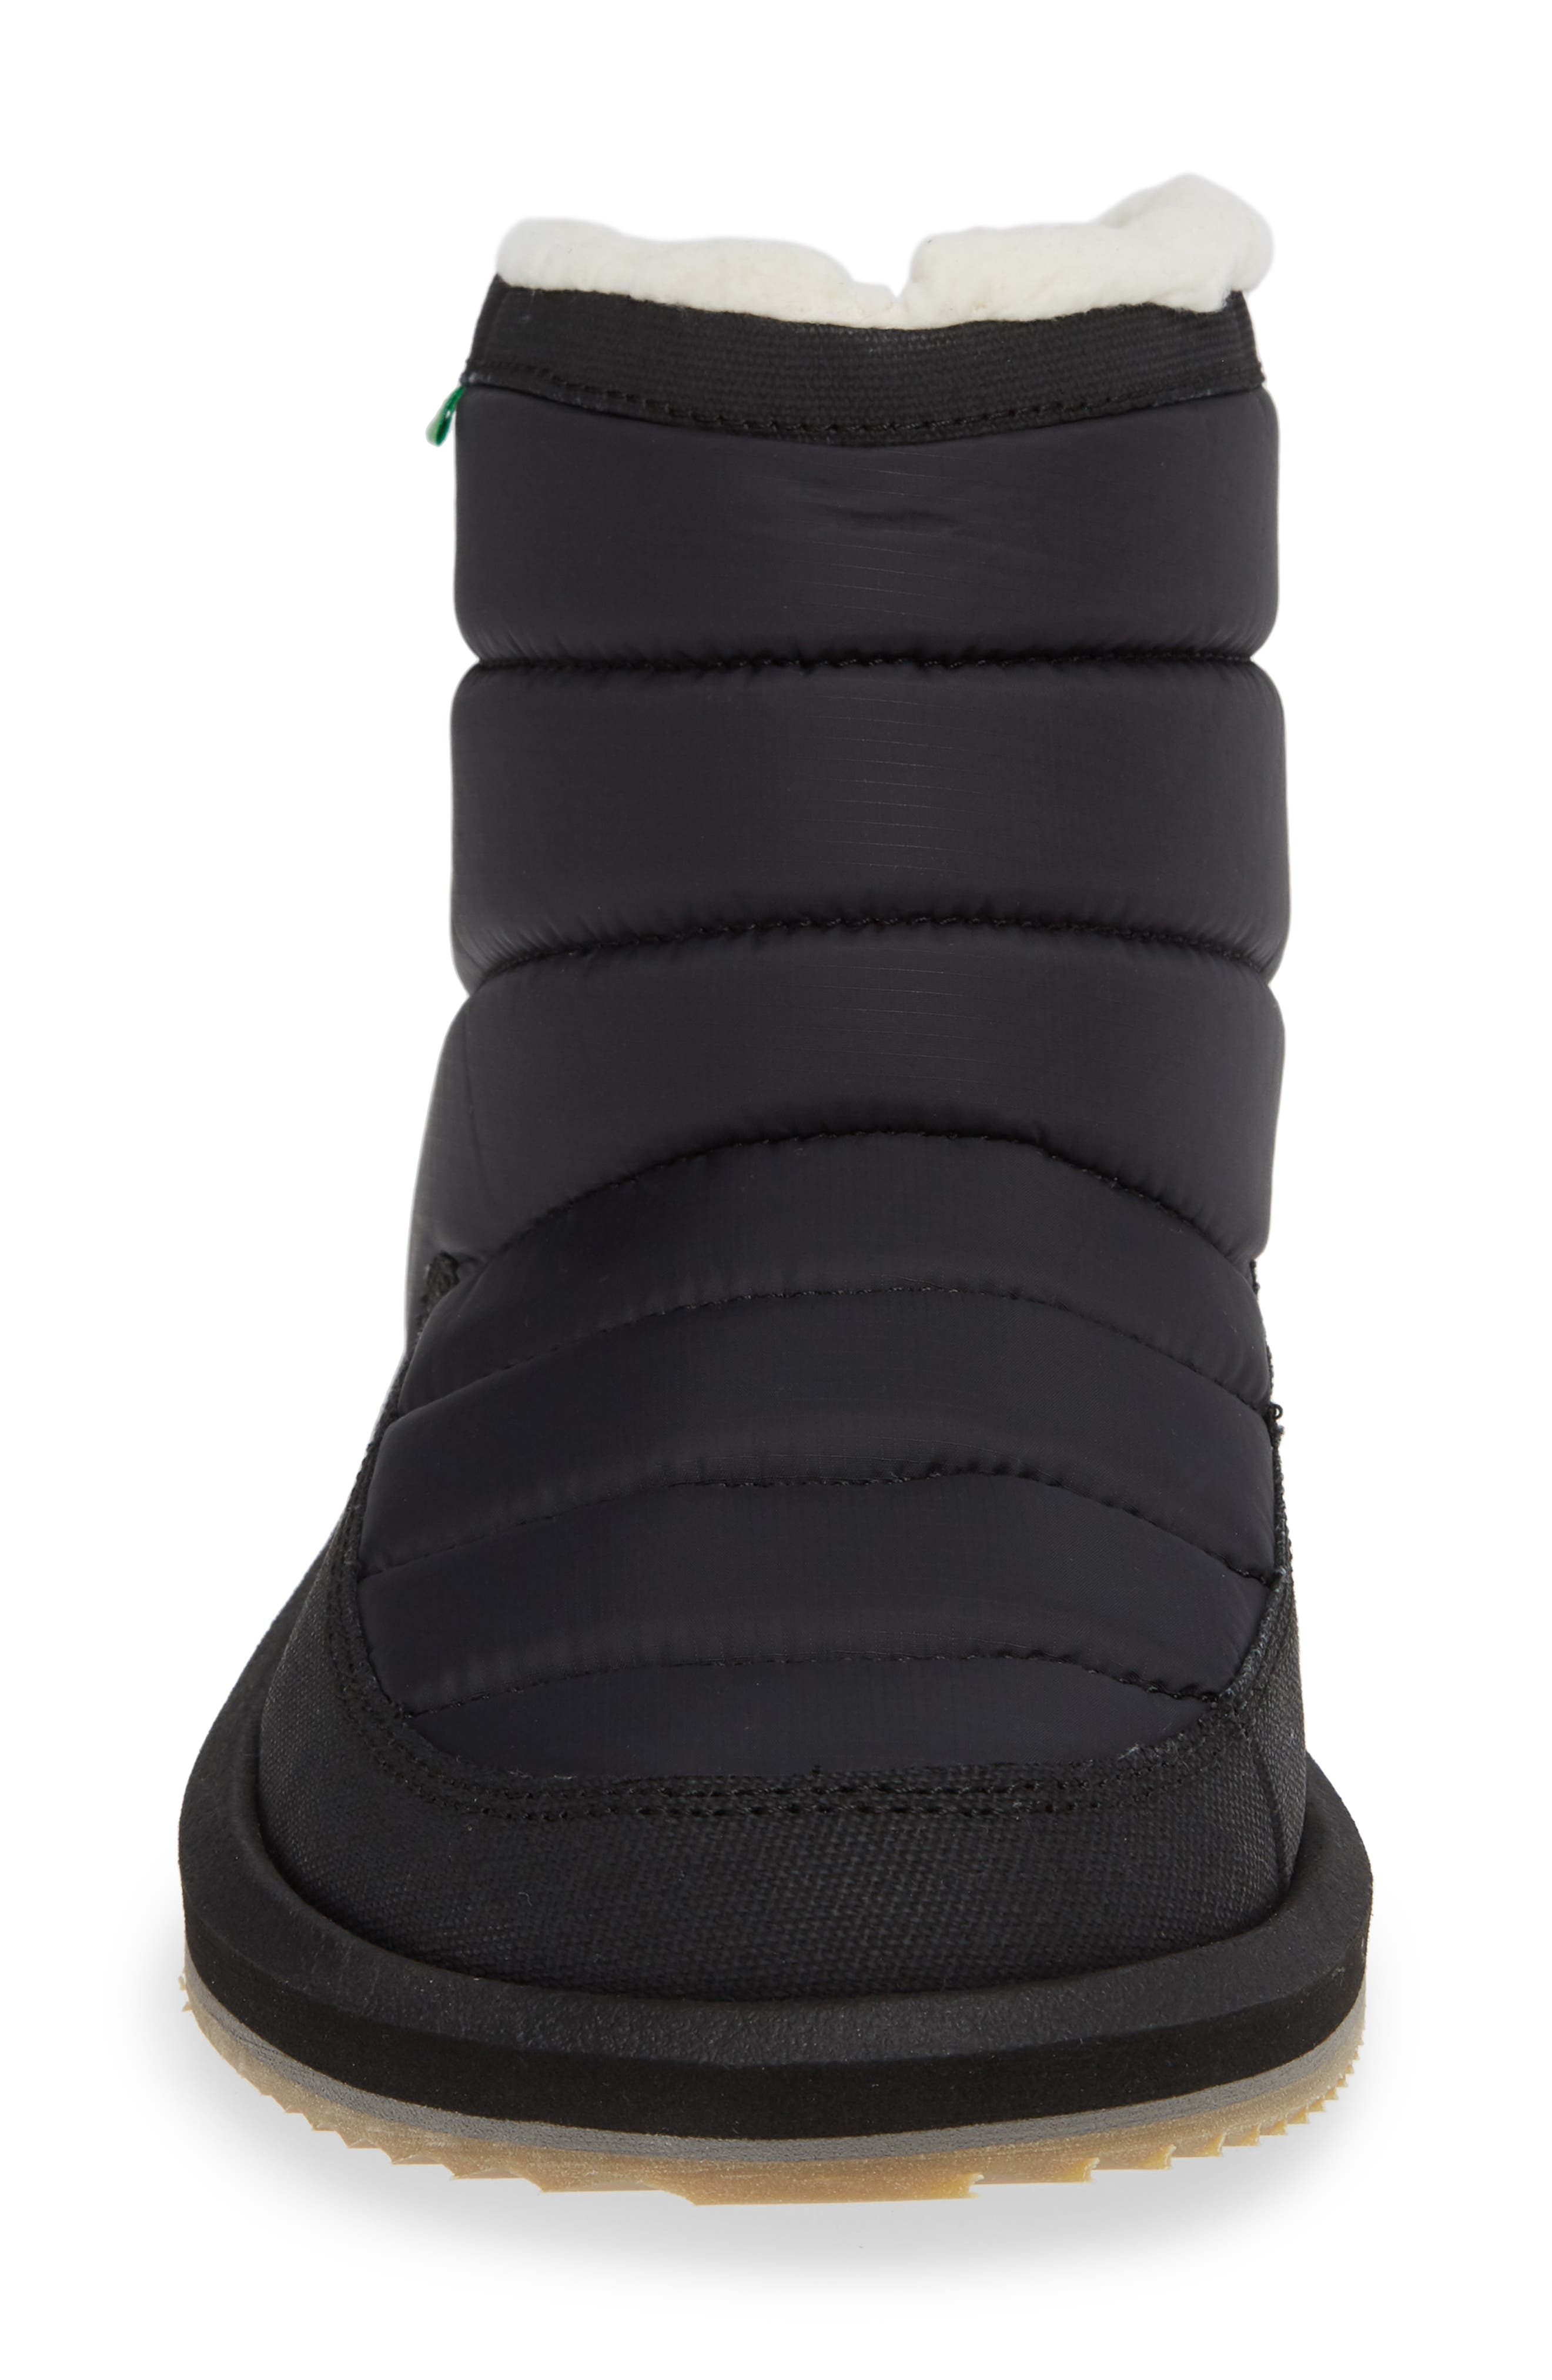 SANUK, Puff & Chill Weather Boot, Alternate thumbnail 4, color, 001